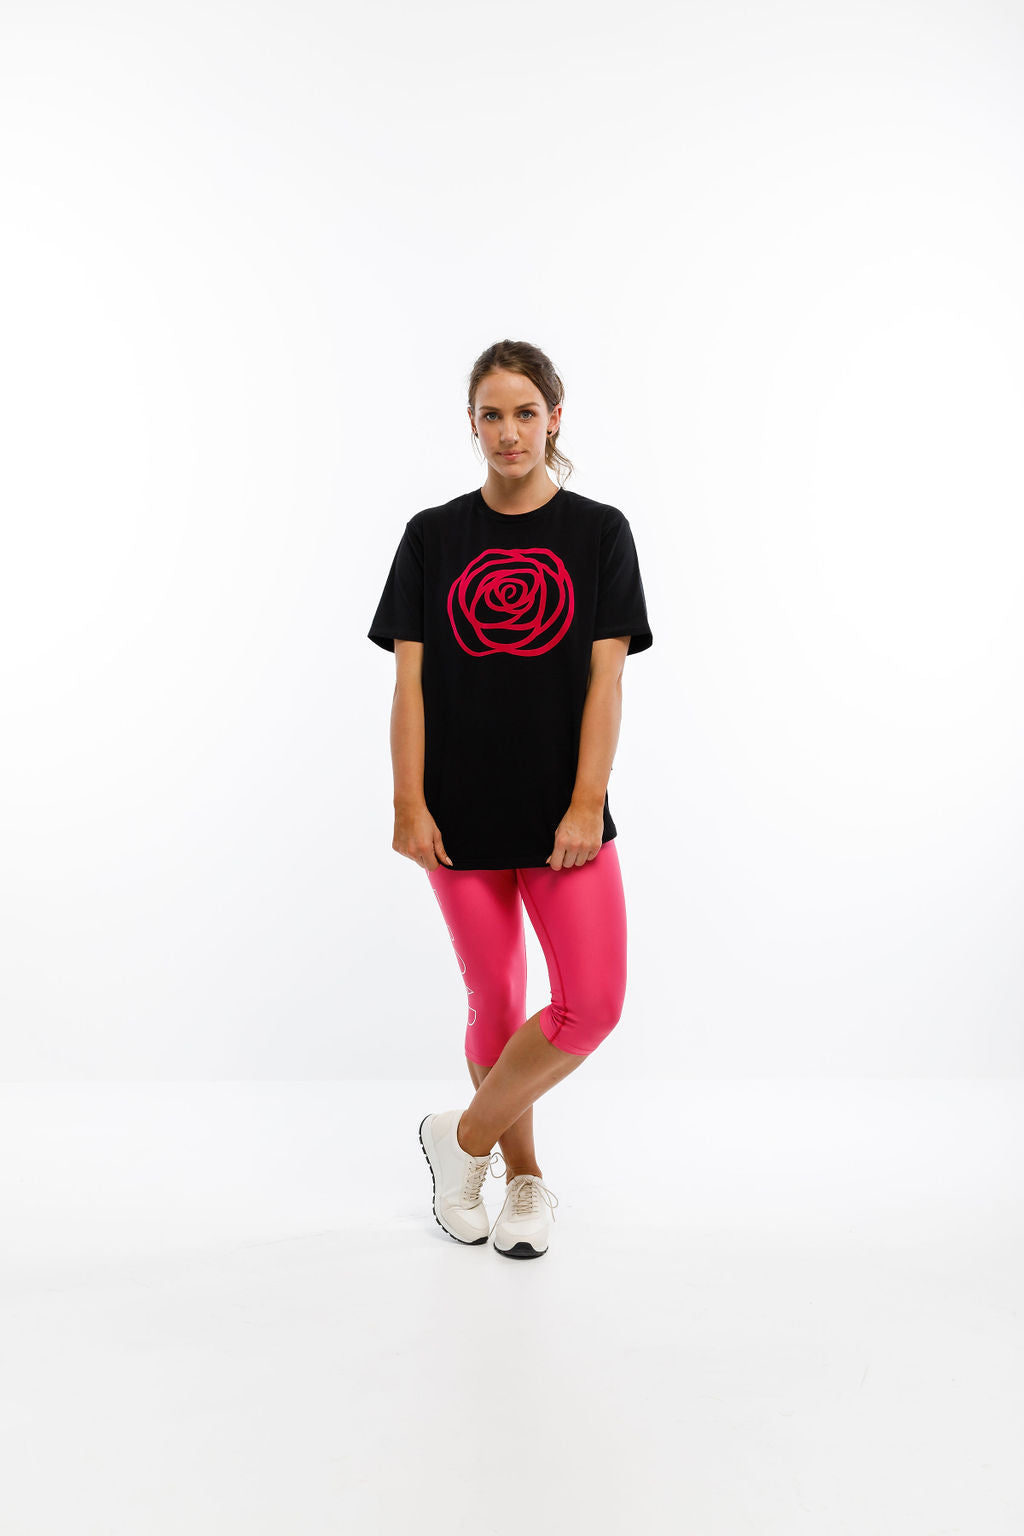 TEE - Black with Pink Velvet Rose